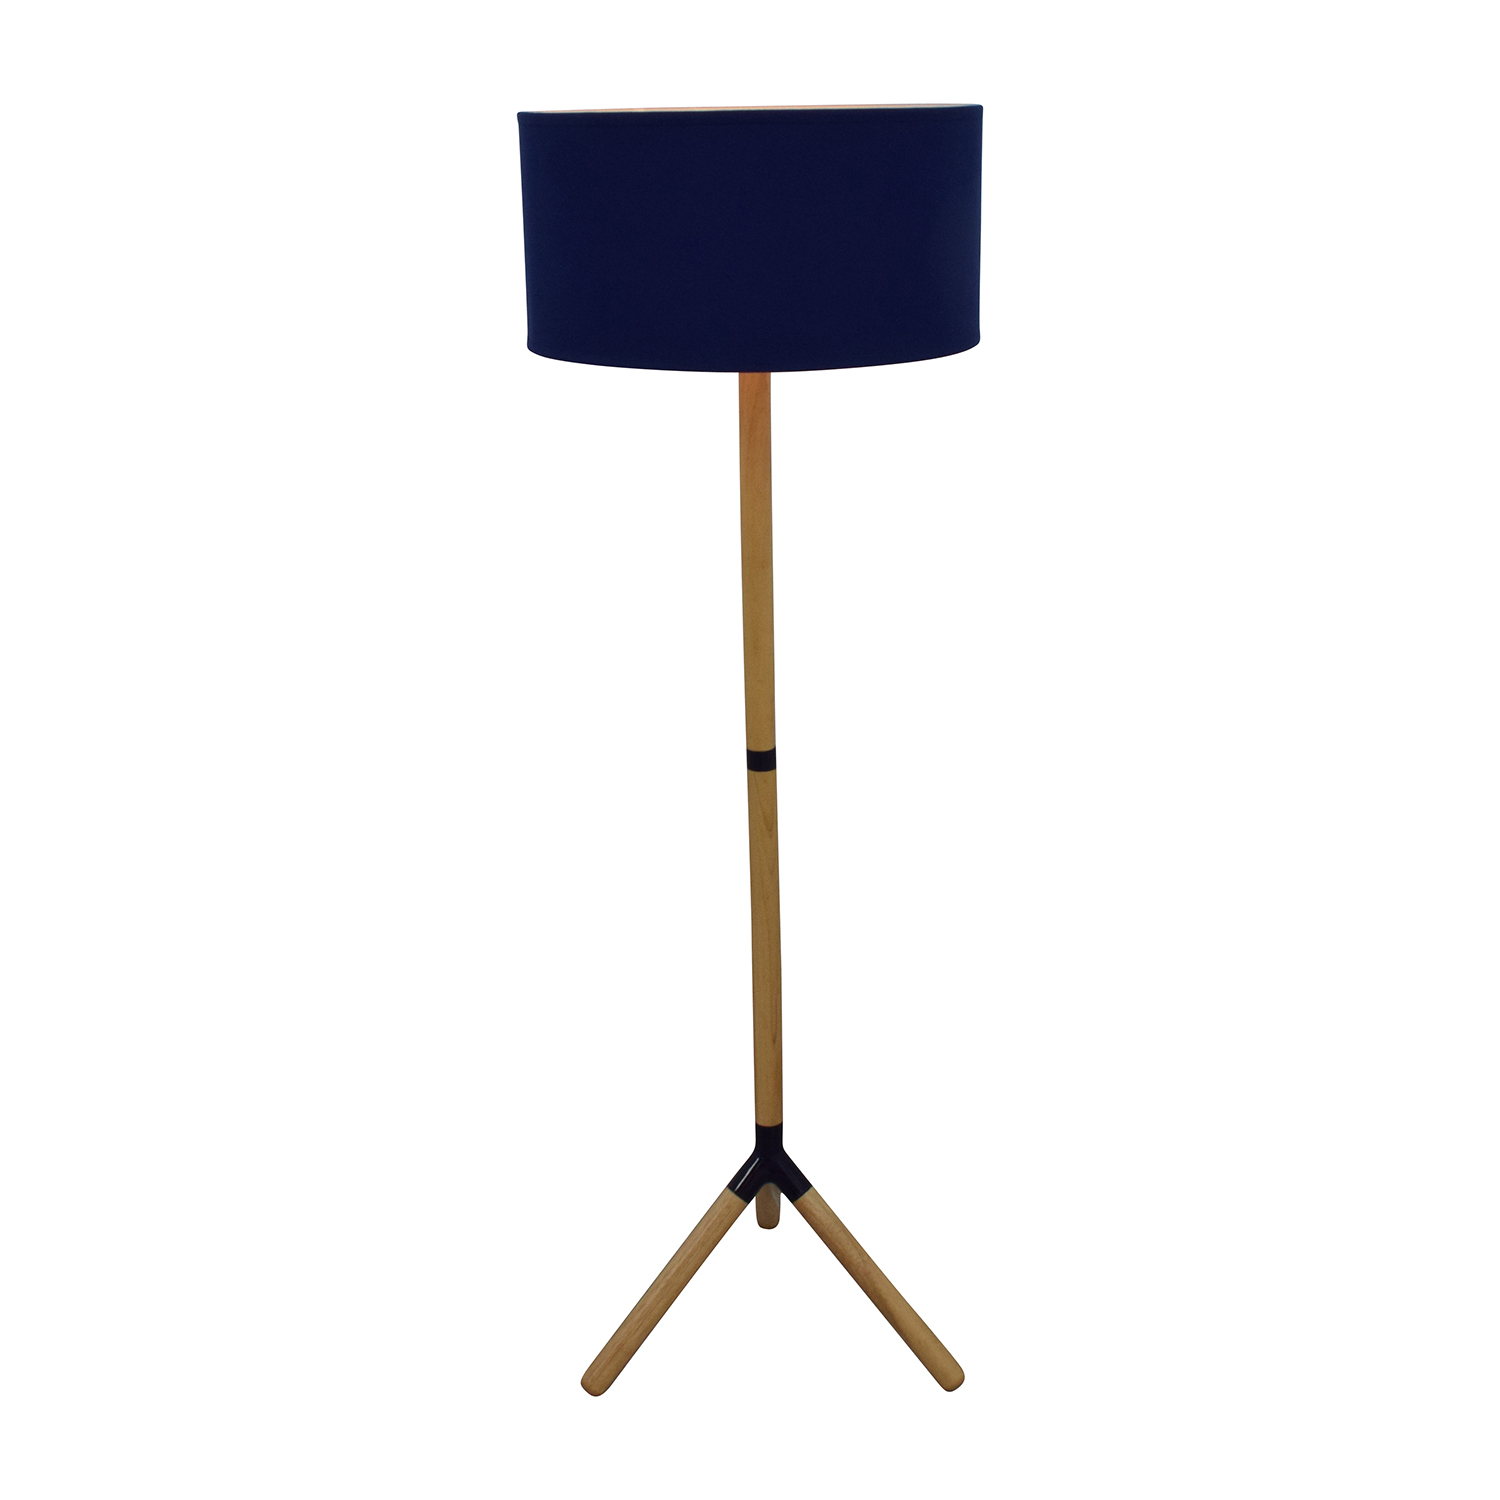 30 off happy chic by jonathan adler jonathan adler for Floor lamp with navy blue shade